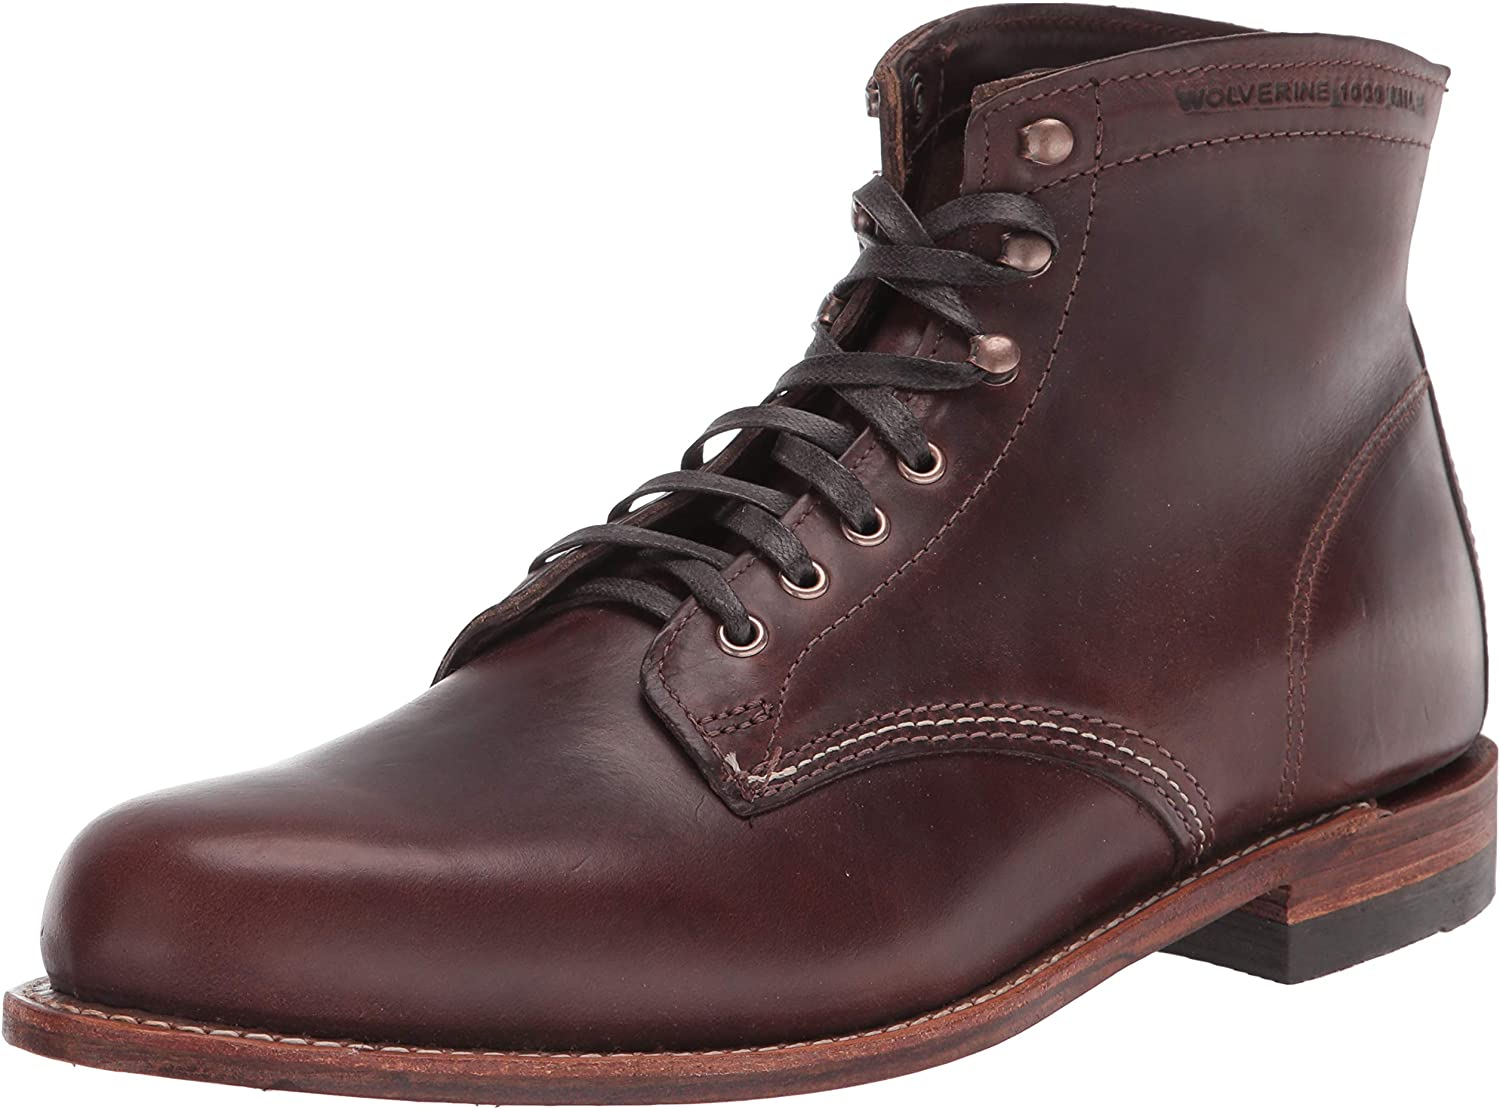 WOLVERINE Men's 1000 Boot Mile Cash special price Large discharge sale Fashion